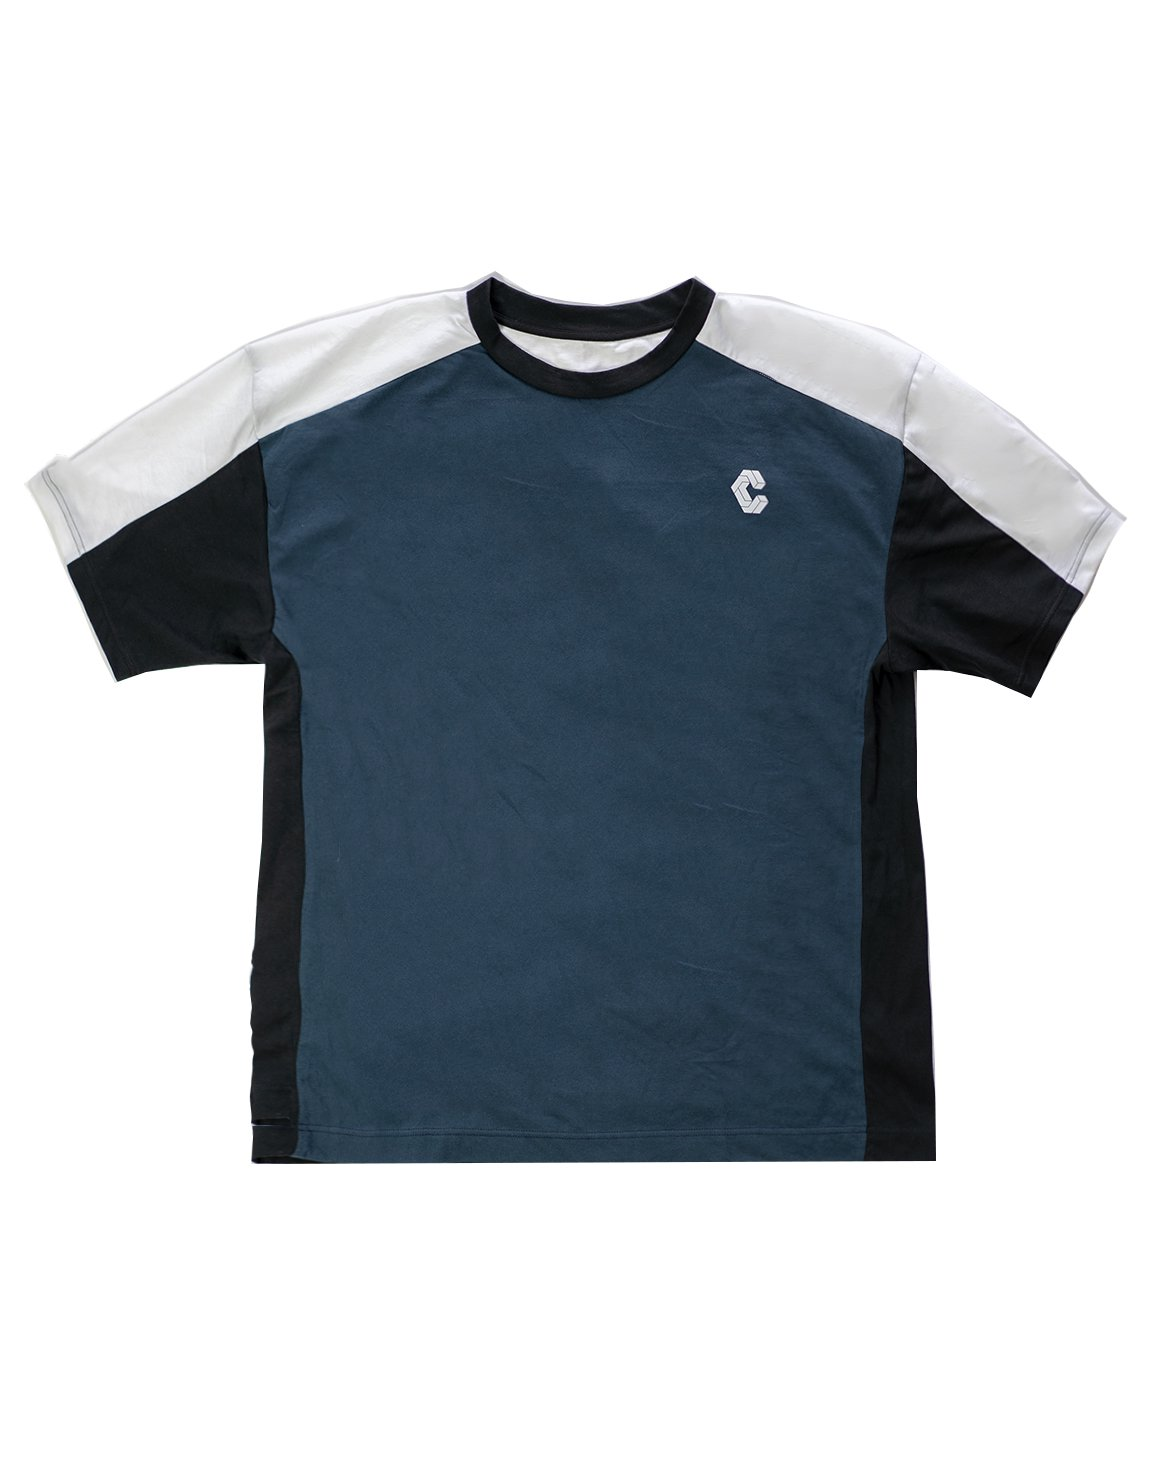 <img class='new_mark_img1' src='https://img.shop-pro.jp/img/new/icons1.gif' style='border:none;display:inline;margin:0px;padding:0px;width:auto;' />CRONOS BACK LOGO OVER SIZE  T-SHIRT NAVY